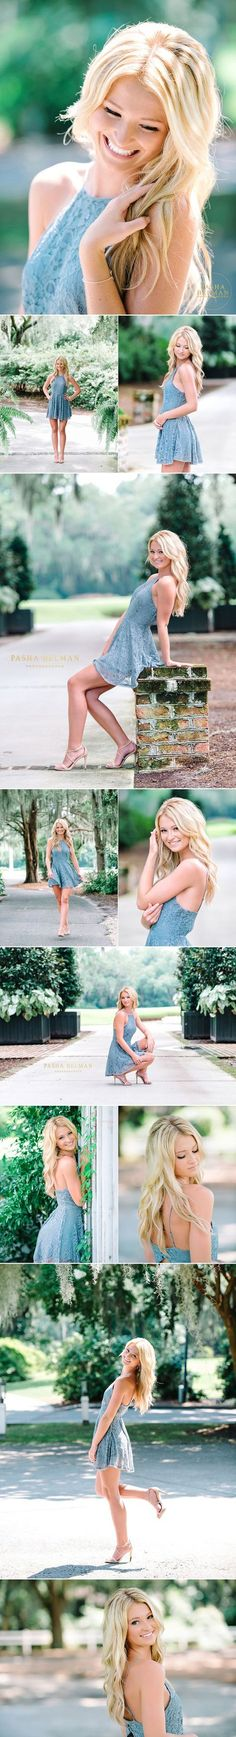 Senior Pictures | Senior Photography | High School Senior Photographers in Charleston and Myrtle Beach | Pasha Belman Photography High School Senior Picture Ideas for Girls